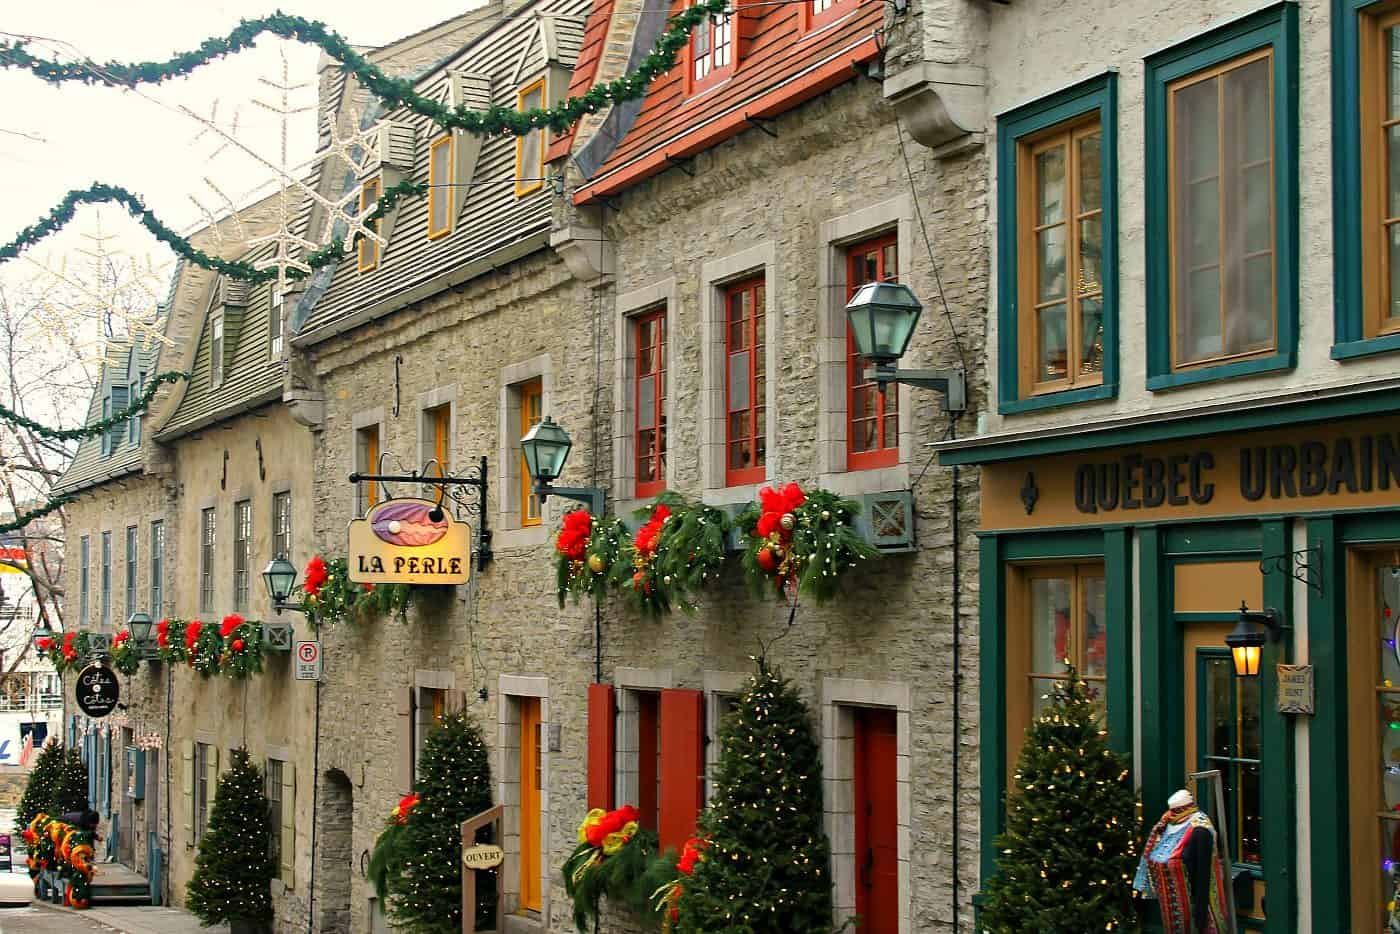 Houses with Christmas decorations in Quebec City